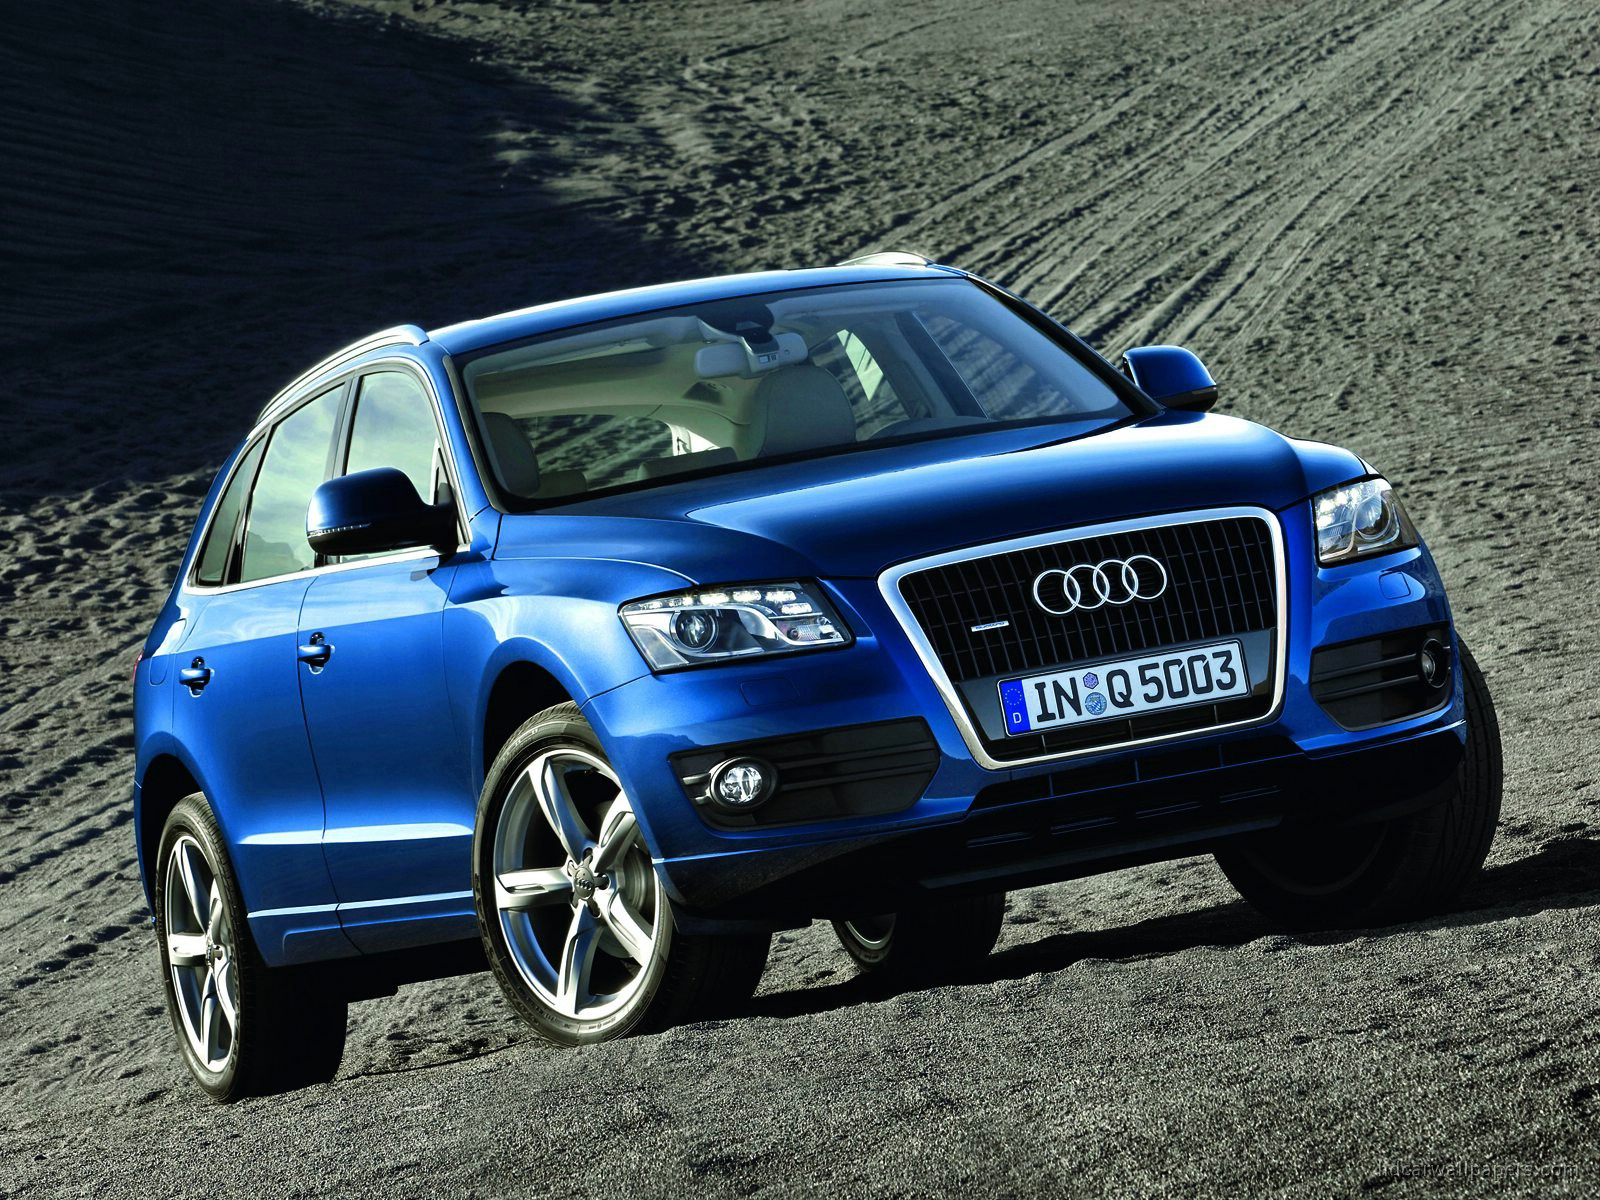 Audi Q5 Wallpaper Hd Car Wallpapers Id 84